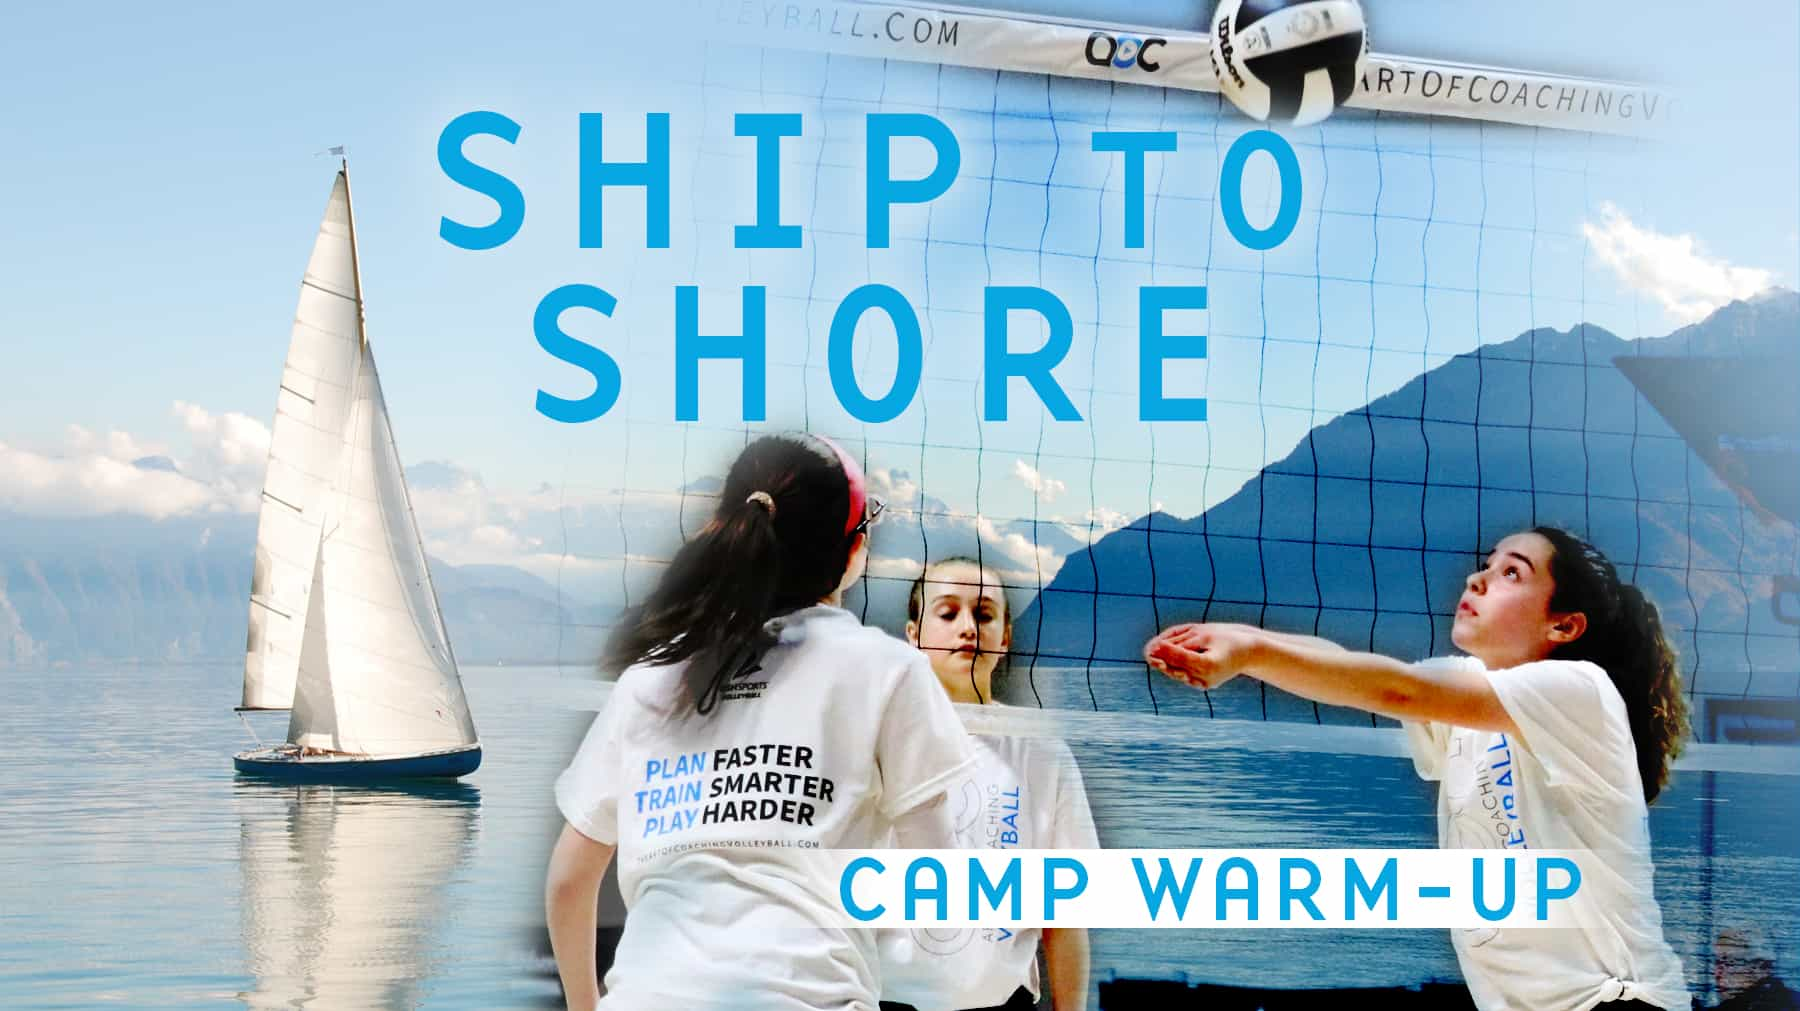 Camp warm-up: Ship to Shore